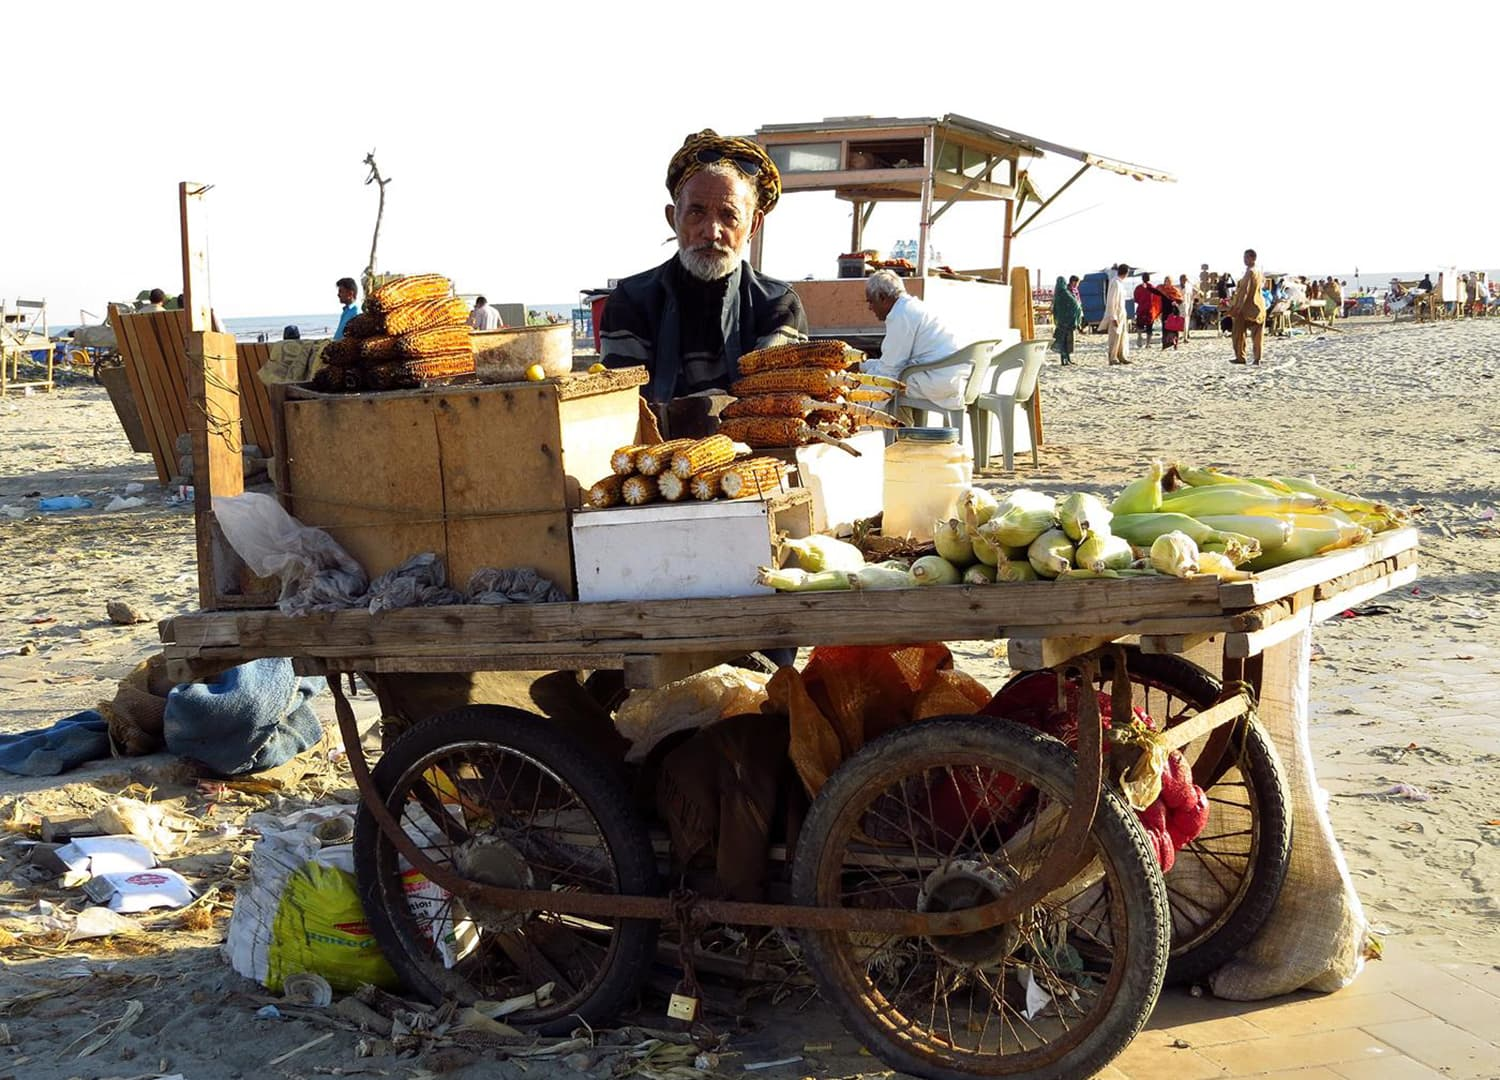 A corn vendor at the beach.